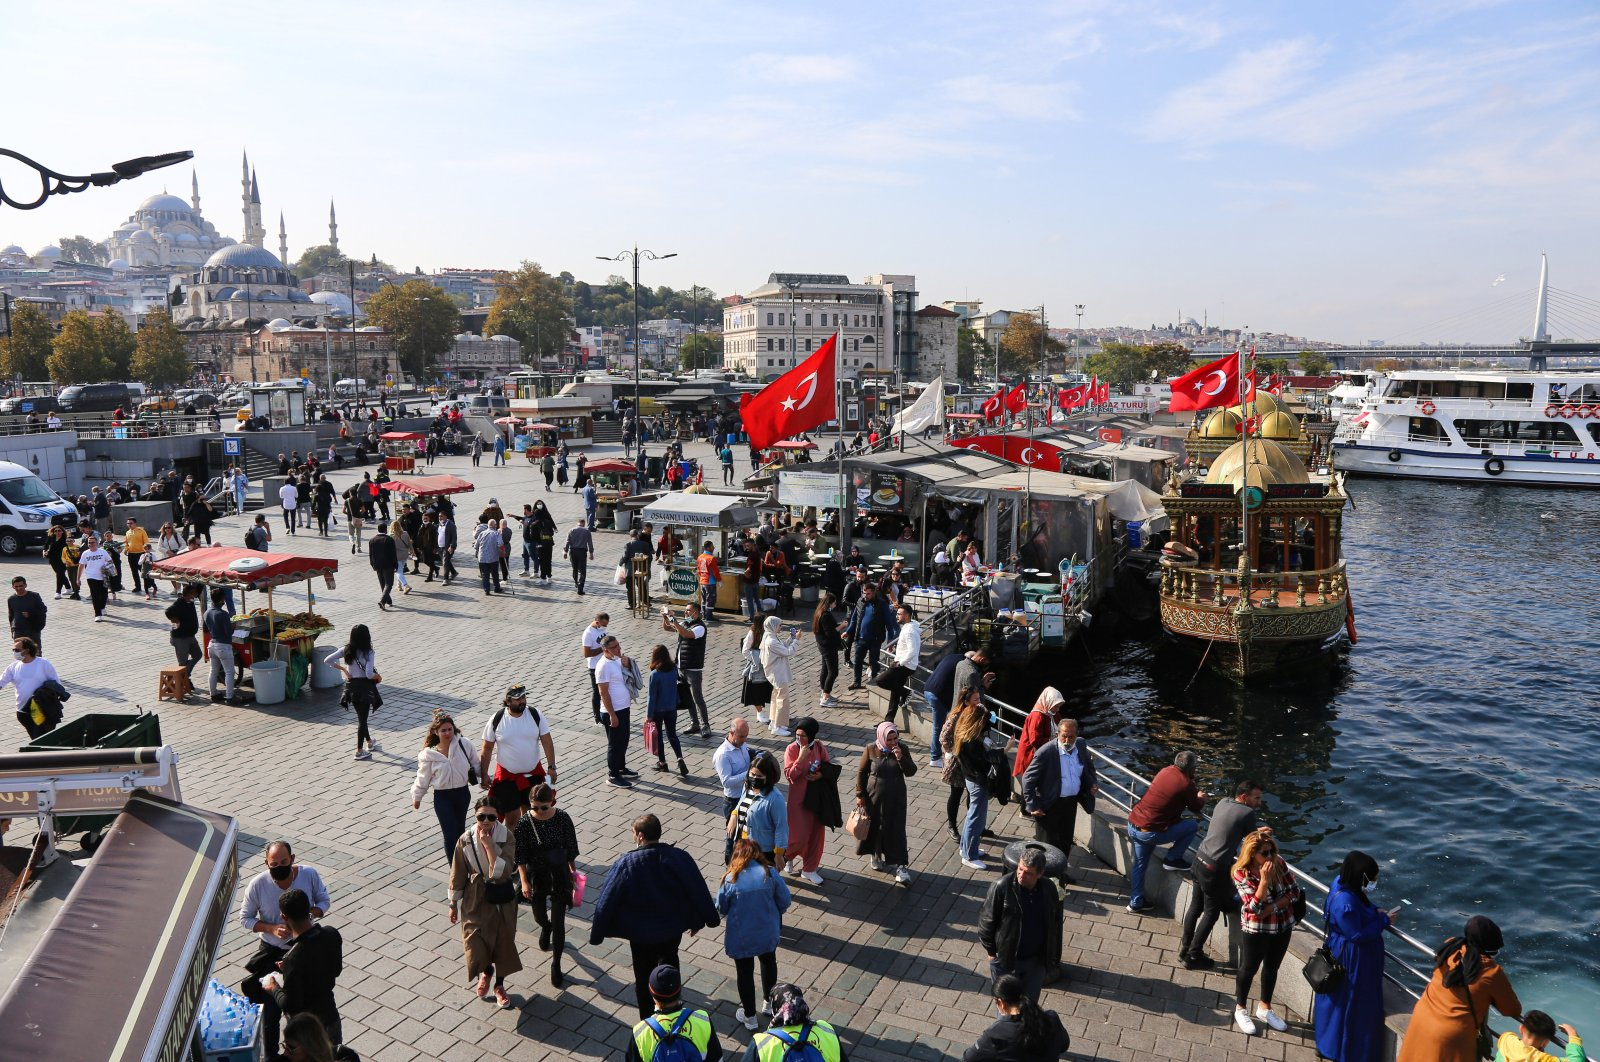 People seen walking and spending time on a sunny day in Eminönü, Istanbul, Turkey, Oct. 11, 2021. (Photo by Getty Images)